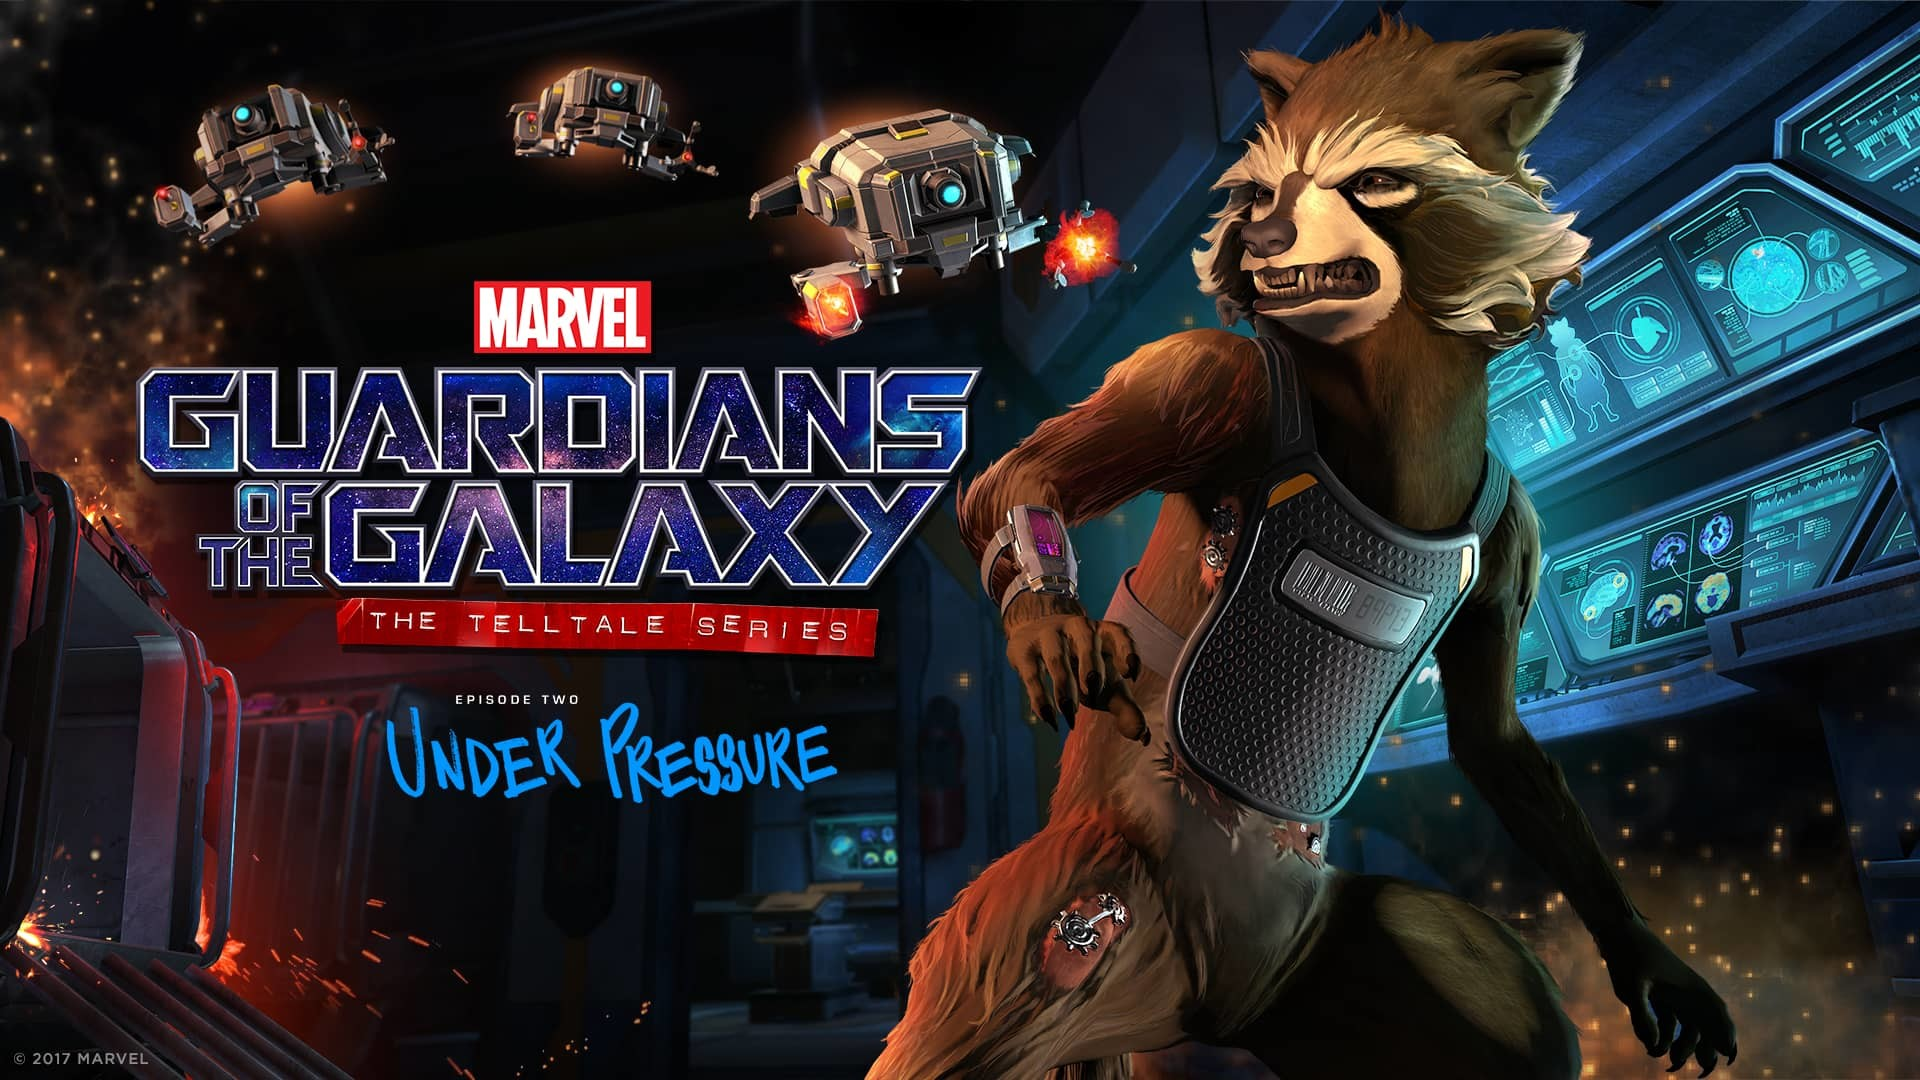 Trailer para segundo episódio de Guardians of the Galaxy: The Telltale Series